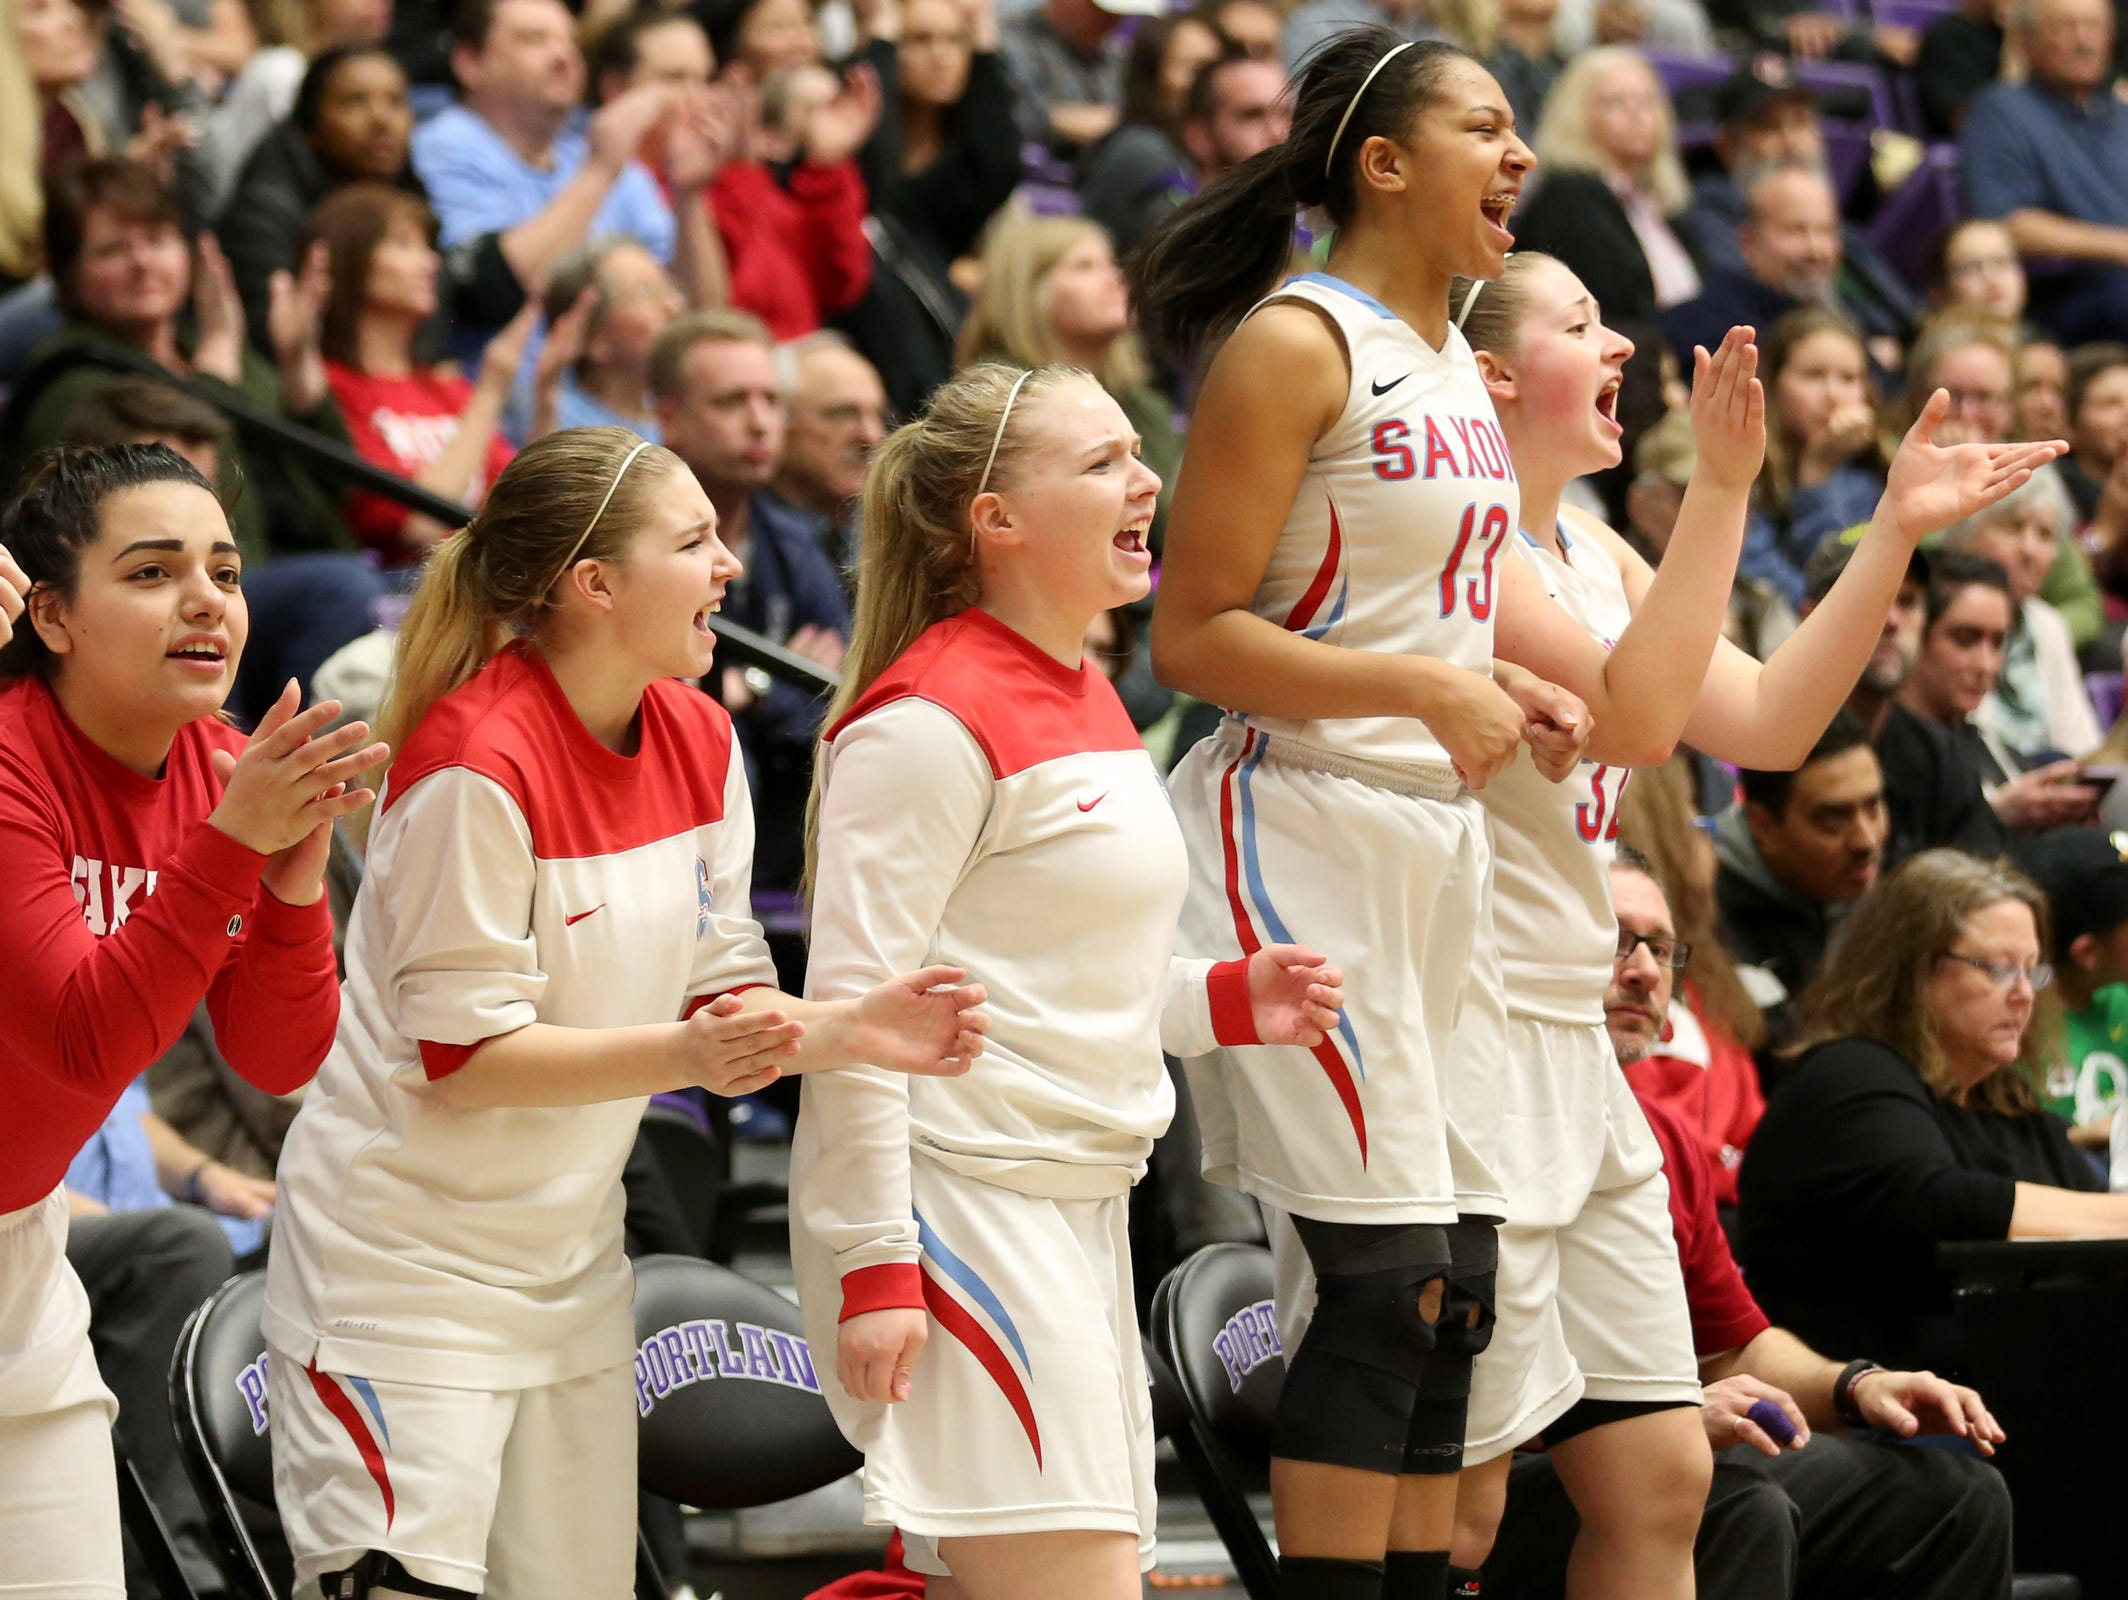 The South Salem bench celebrates a play during the second half of the Grant vs. South Salem girl's basketball game to determine third place in the OSAA Class 6A State Championships at the University of Portland on Saturday, March 11, 2017. South Salem won the game 58-53.